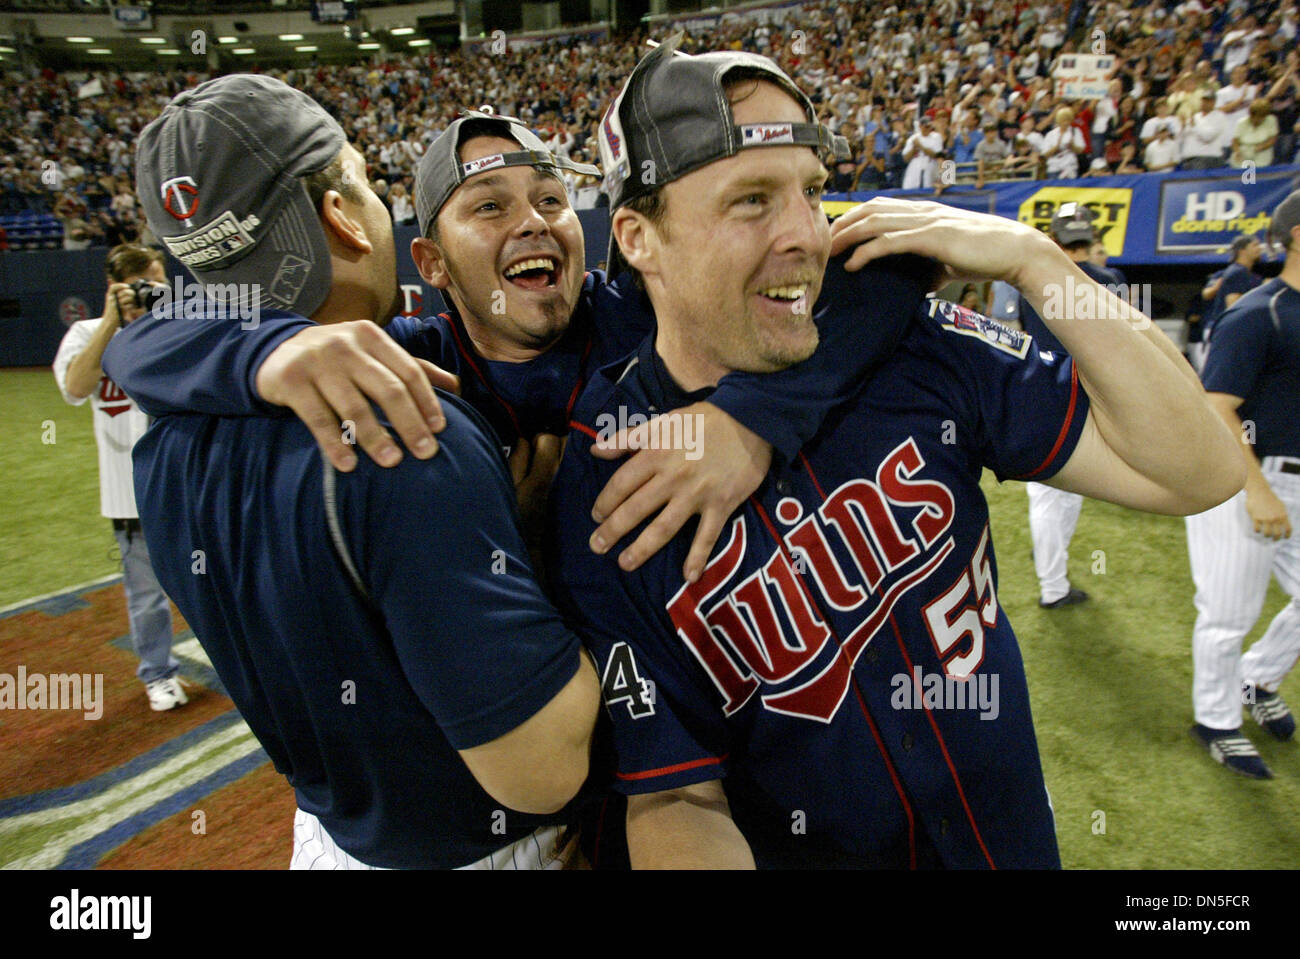 Oct 01, 2006; Minneapolis, MN, USA; The Minesota Twins celebrate winning their division after Detroit's loss to Kansas City duirng the conclusion of their game against the Chicago White Sox at the Metordome in Minneapolis, Minnesota, Sunday, October 1, 2006. The Twins defeated the White Sox 5-1.  Mandatory Credit: Photo by Marlin Levison/Minneapolis Star T/ZUMA Press. (©) Copyright Stock Photo